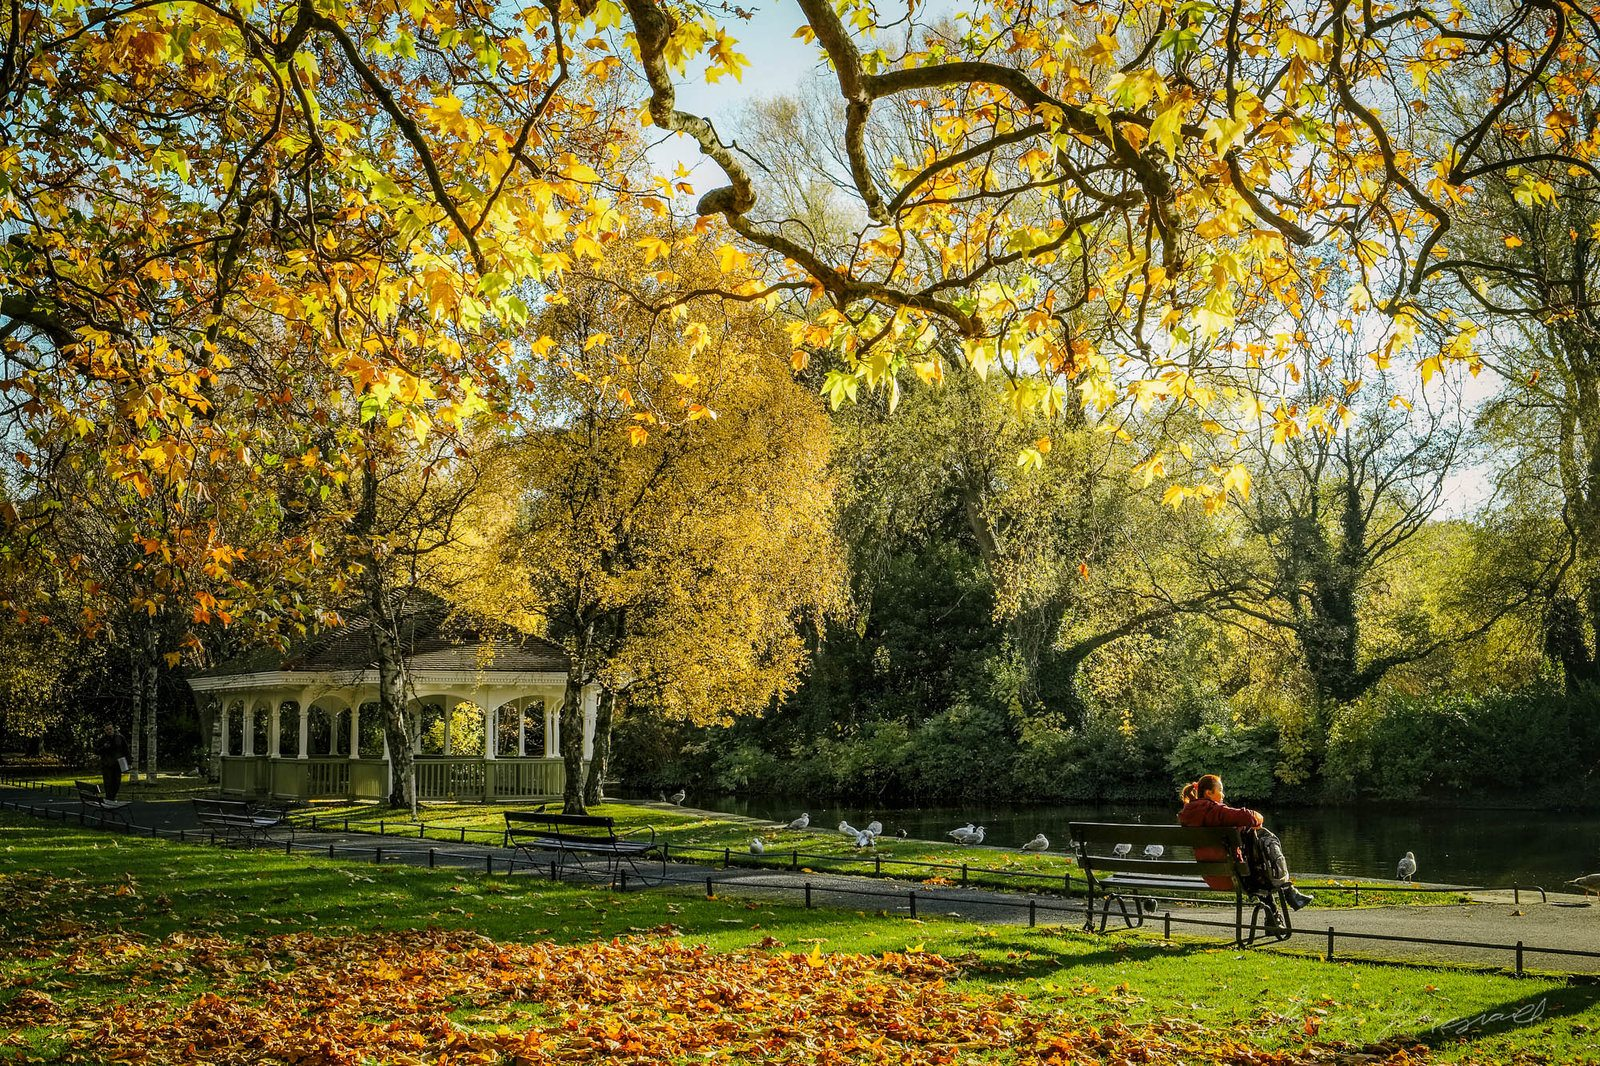 St. Stephen's Green in Autumn